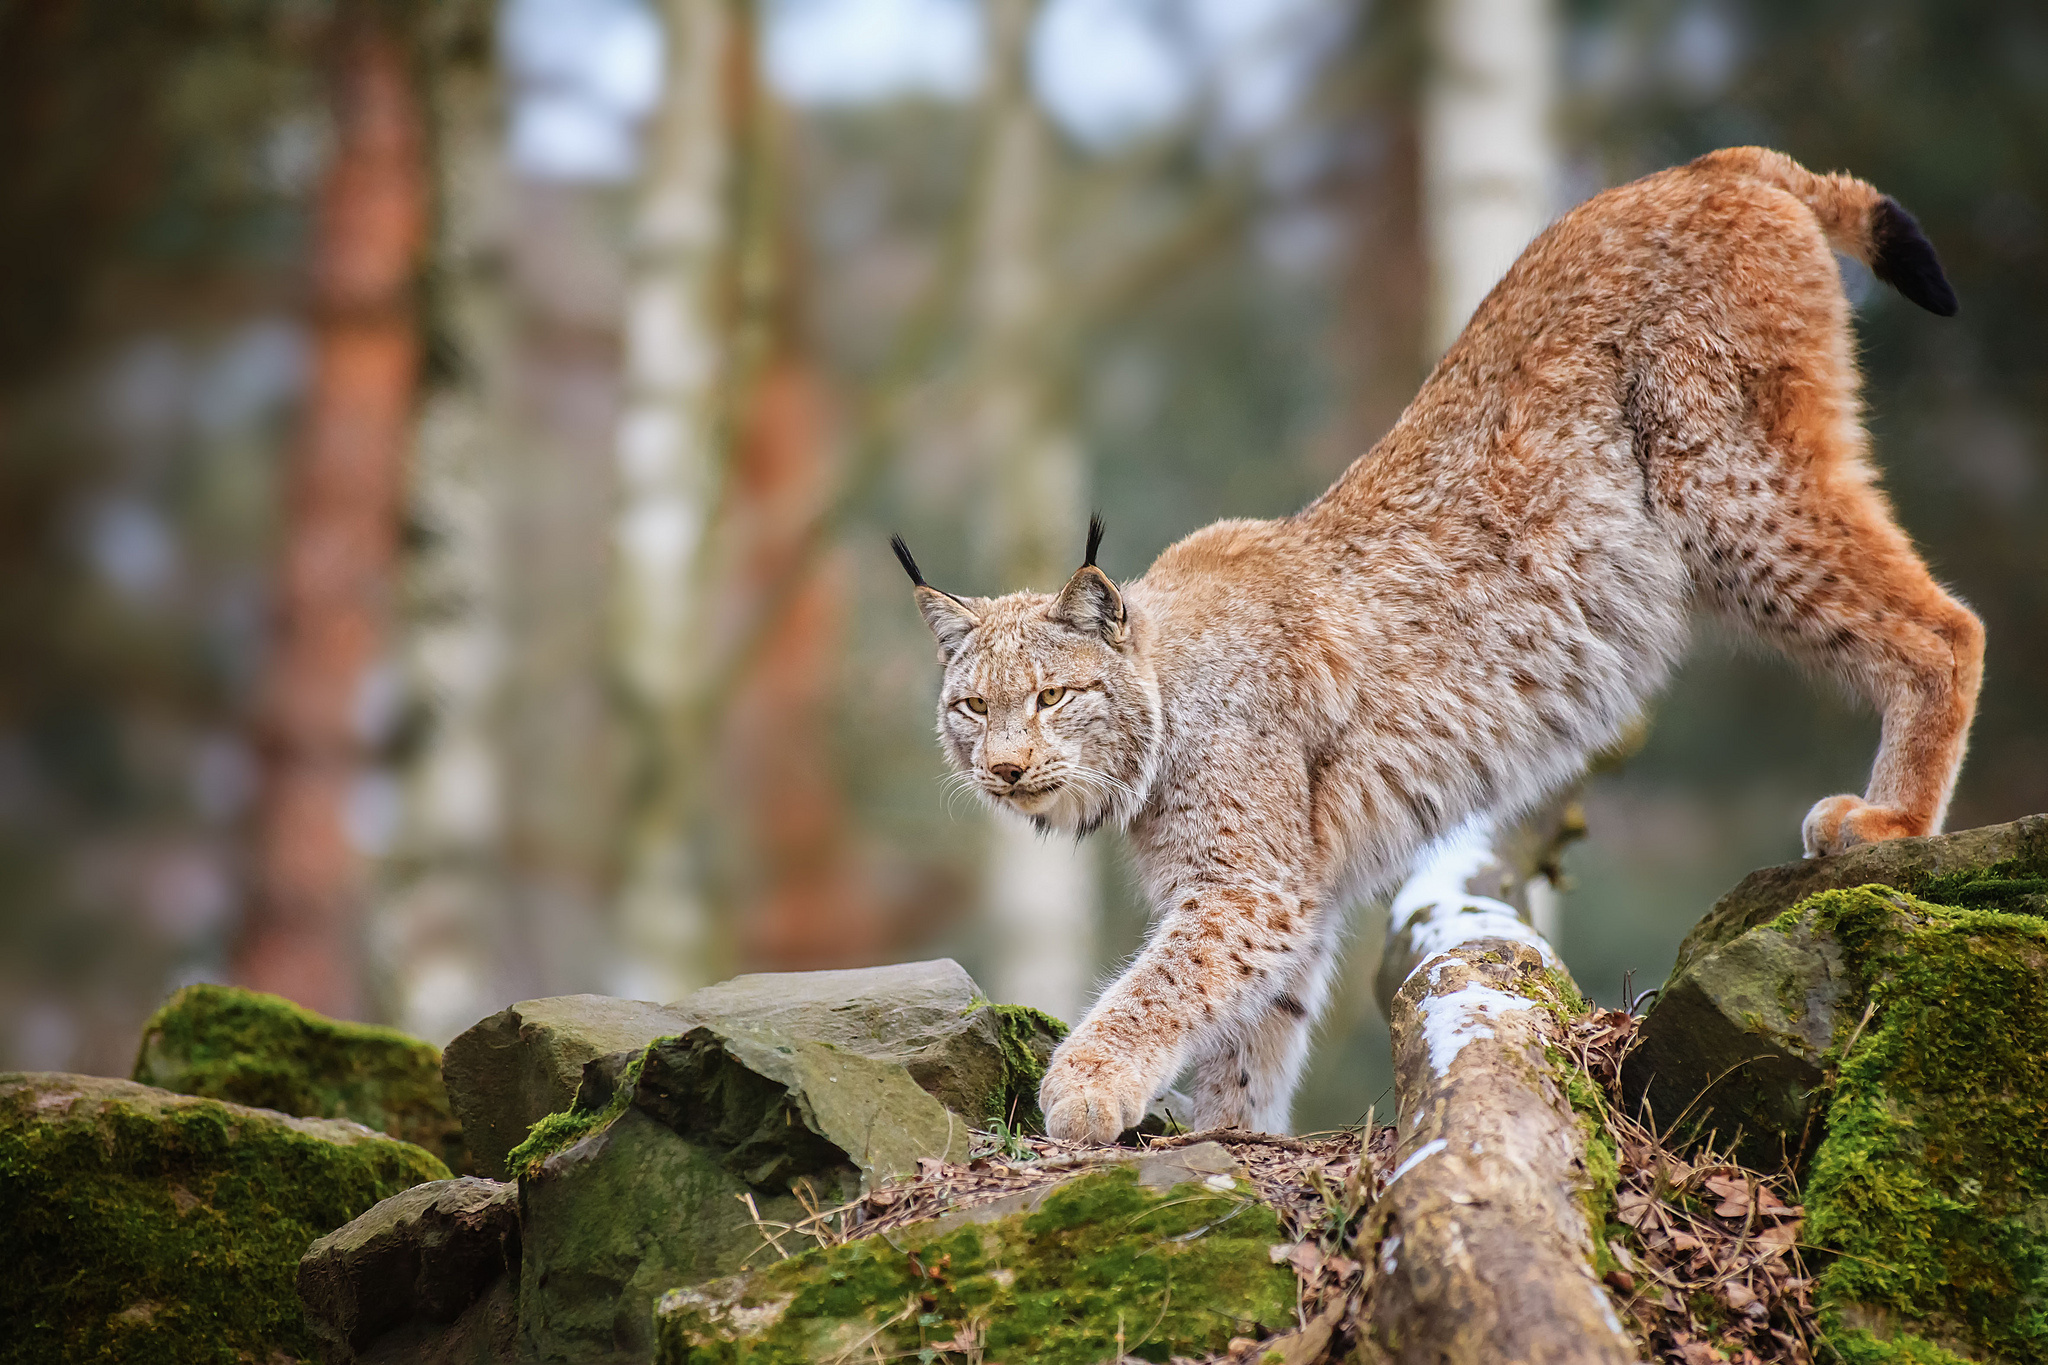 lynx images hd